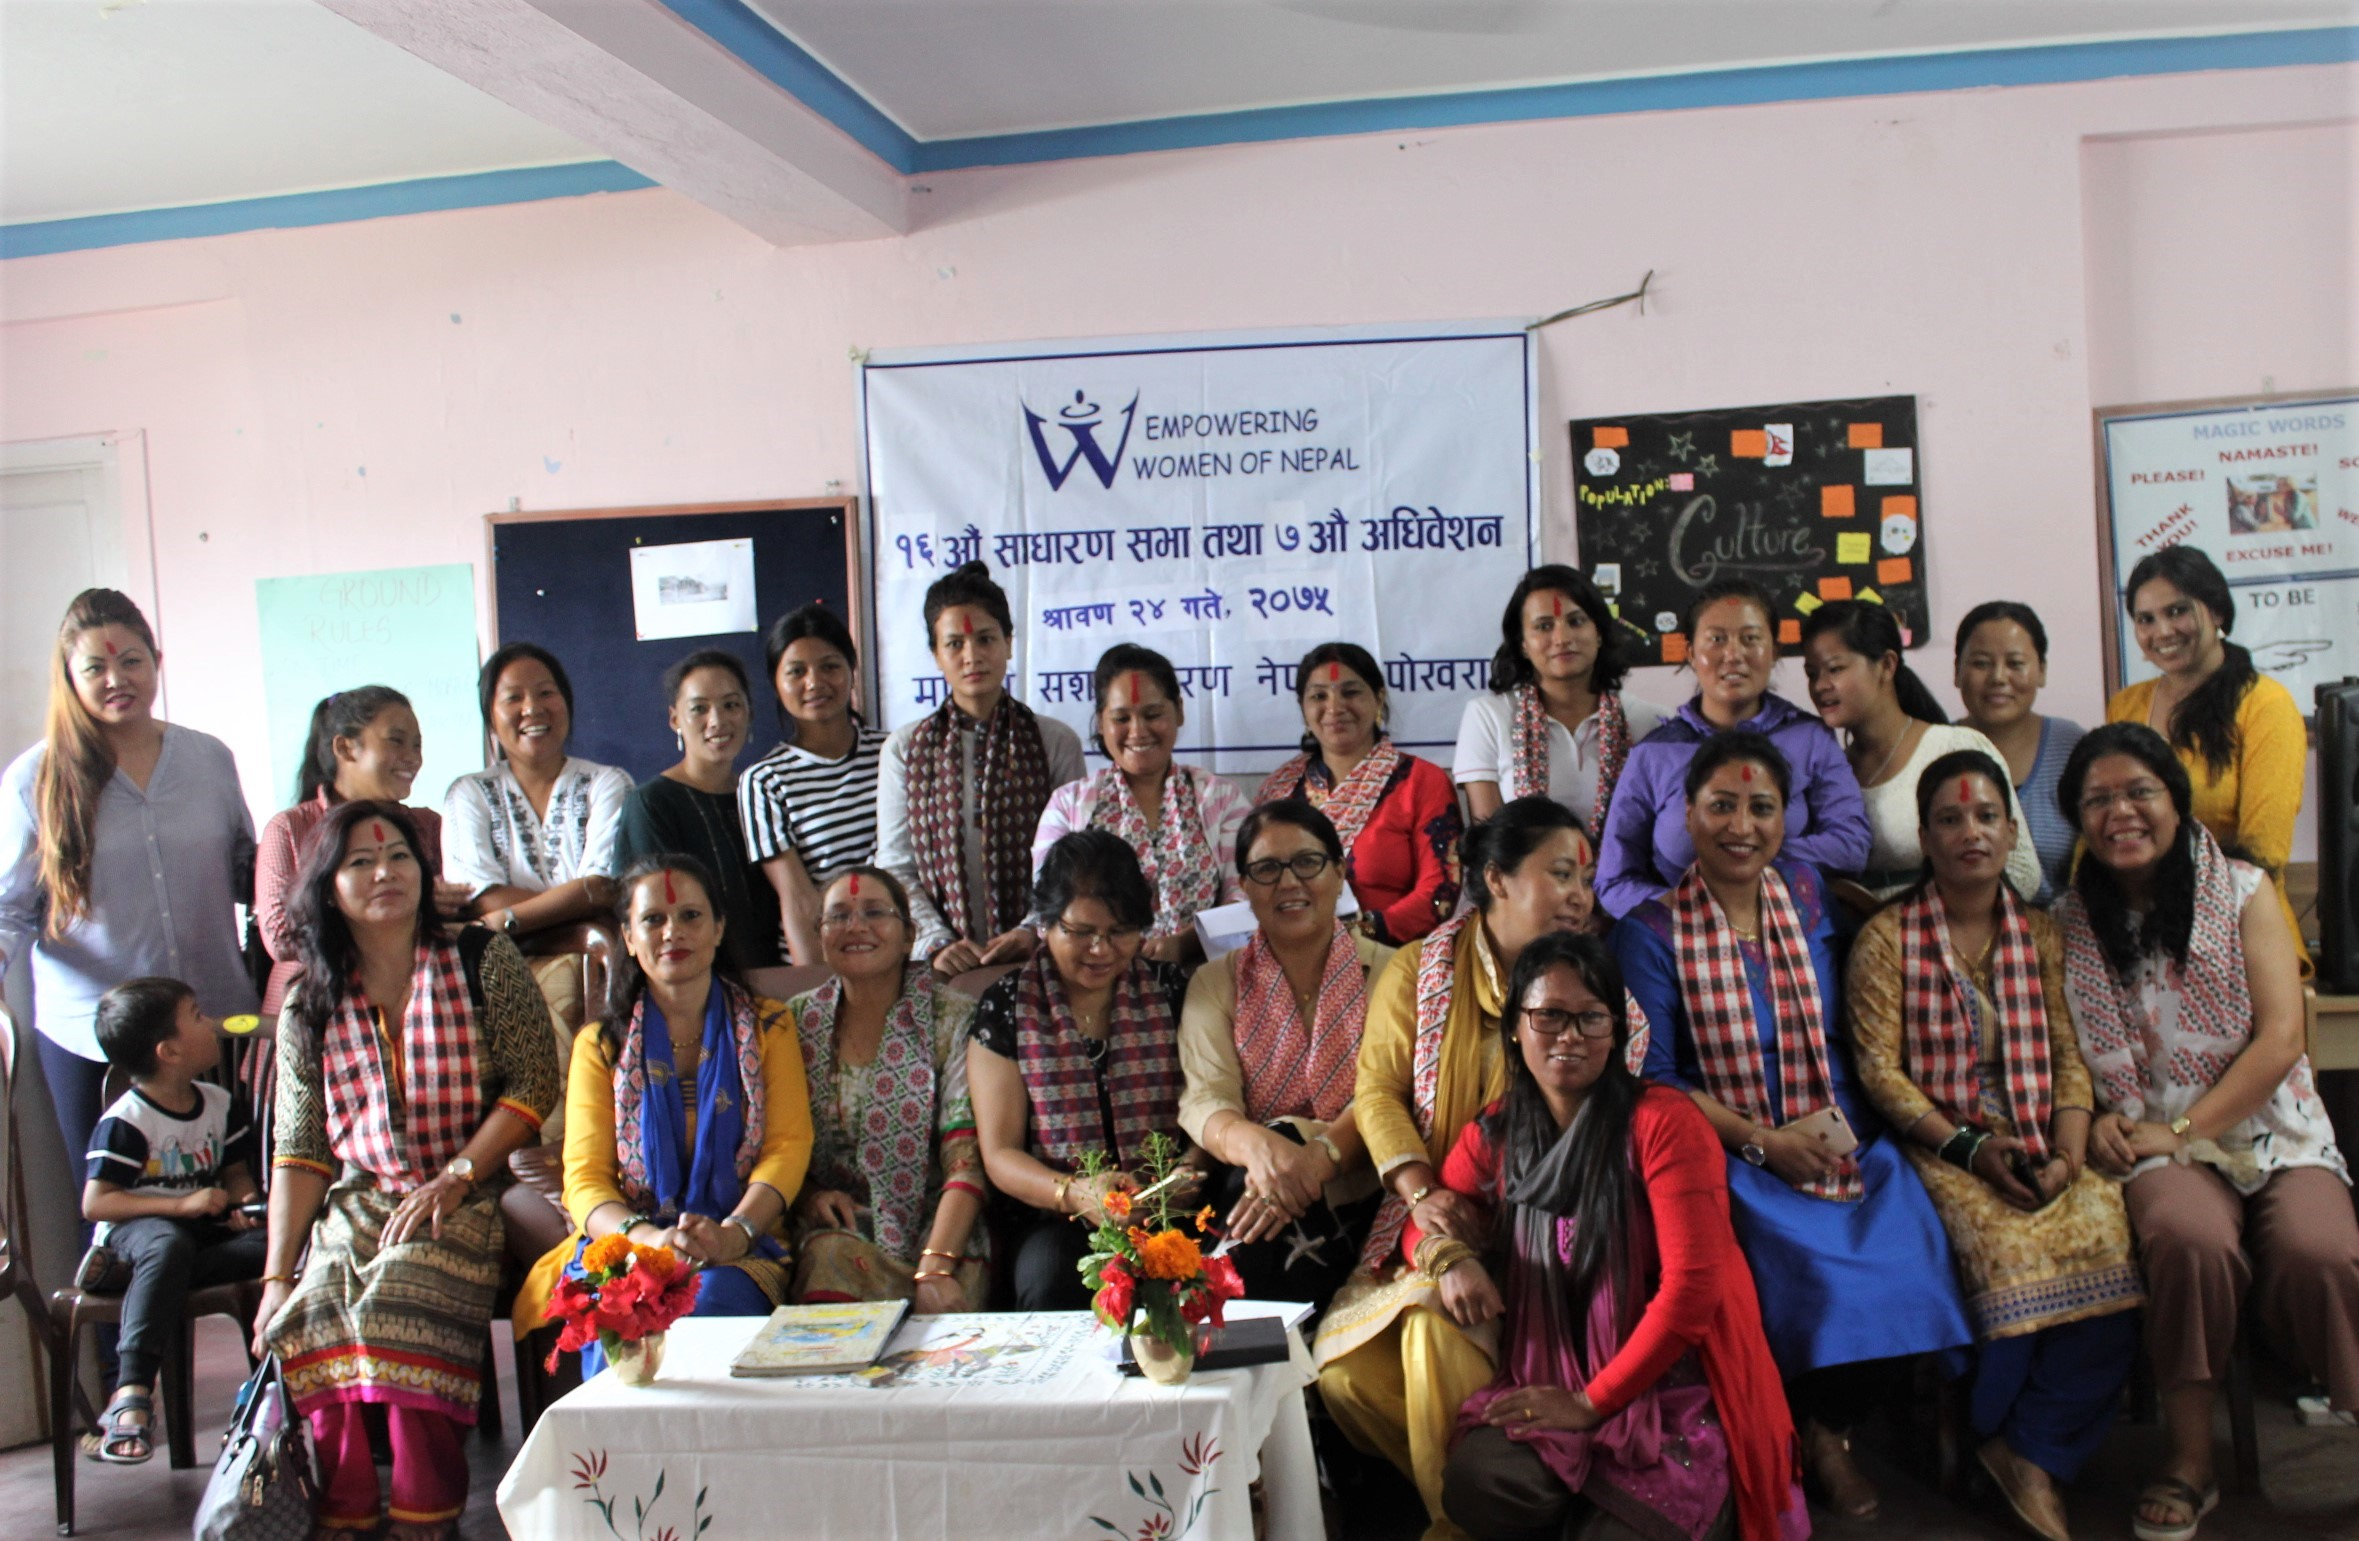 Annual General Meeting and Convention of Empowering Women of Nepal